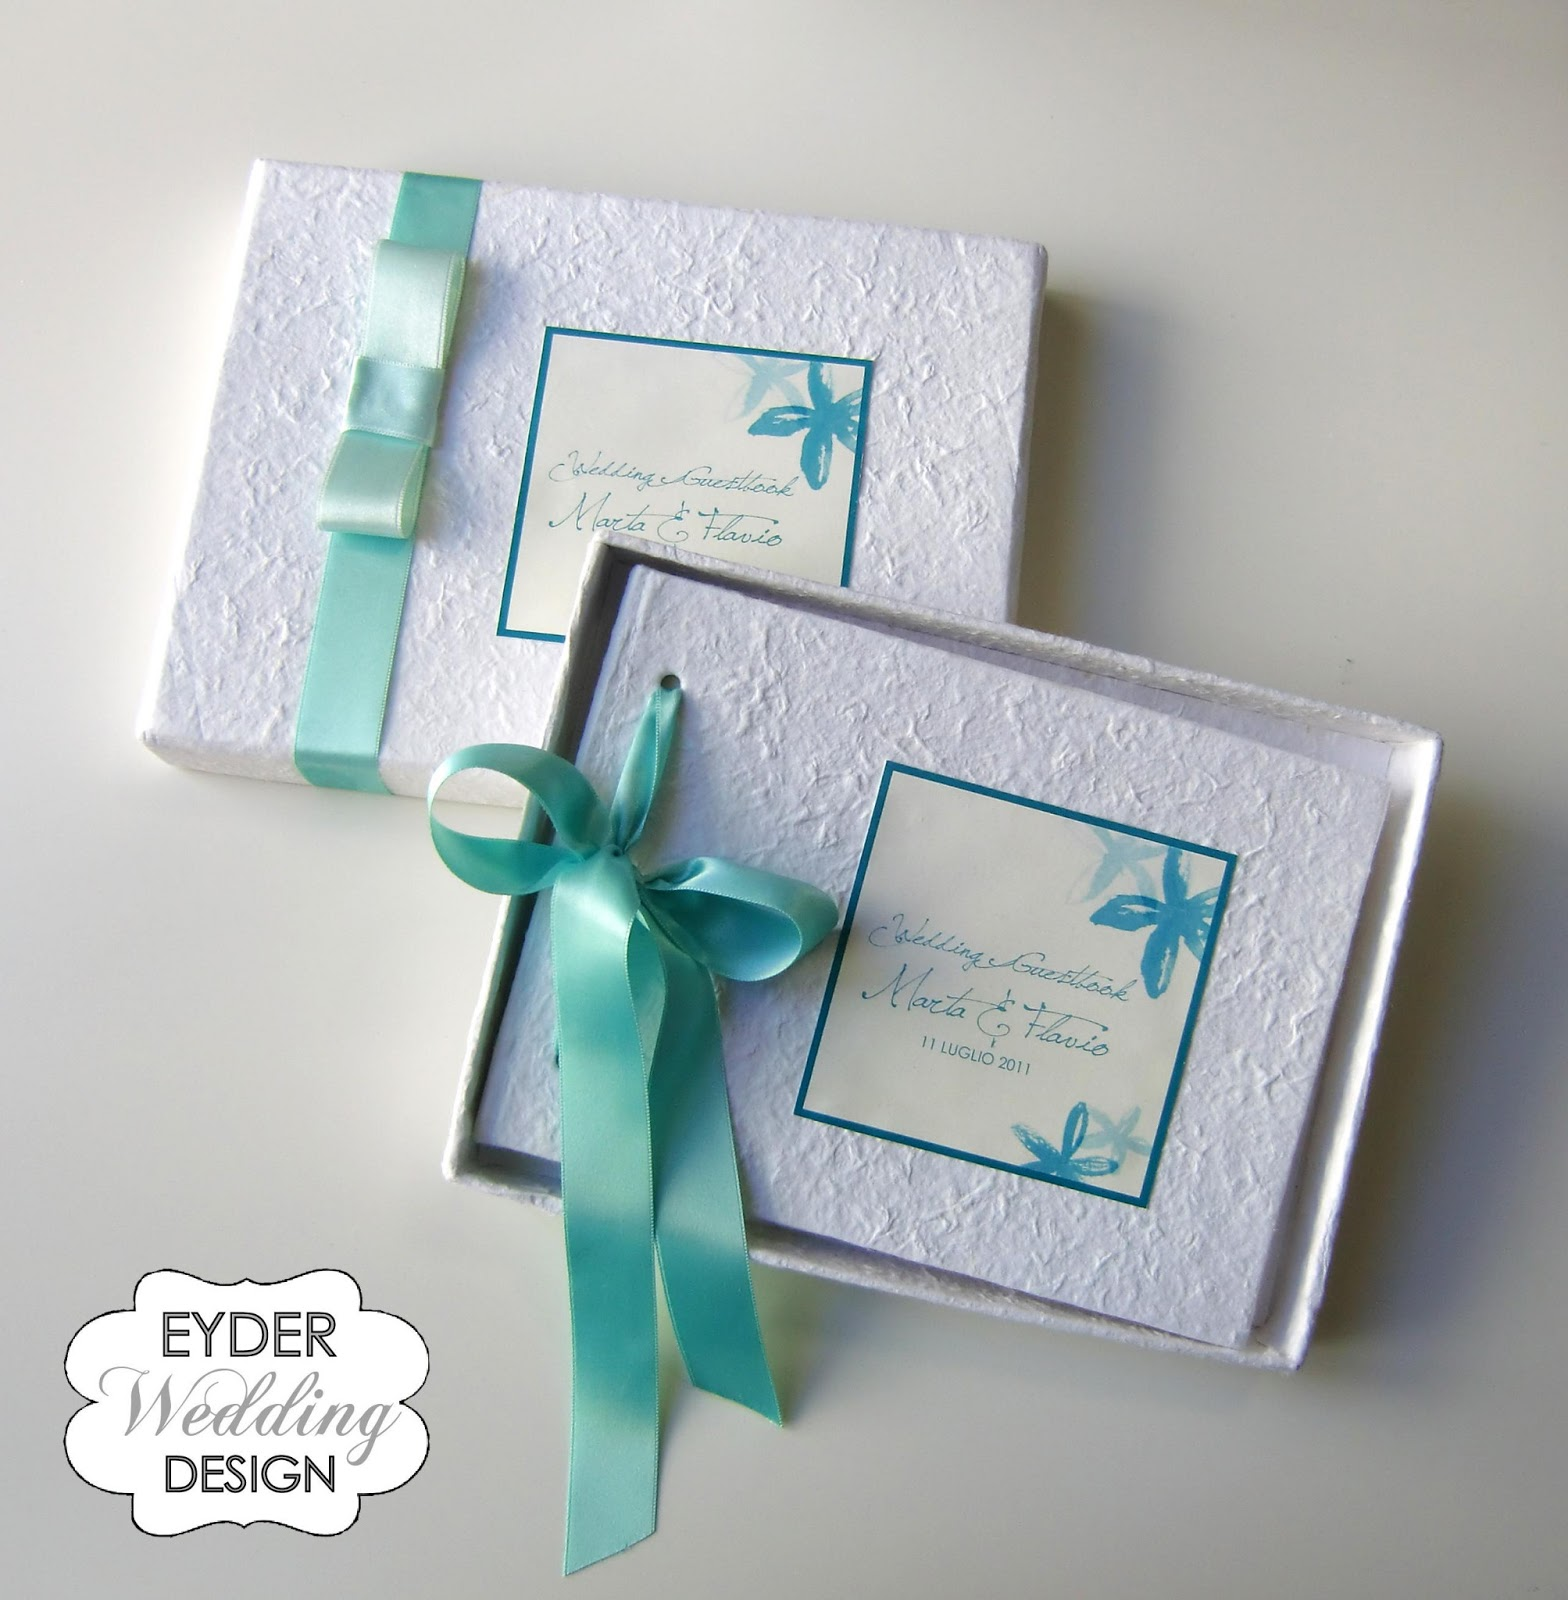 Matrimonio Tema Tiffany : Eyder wedding design le collezioni eyderweddingdesign